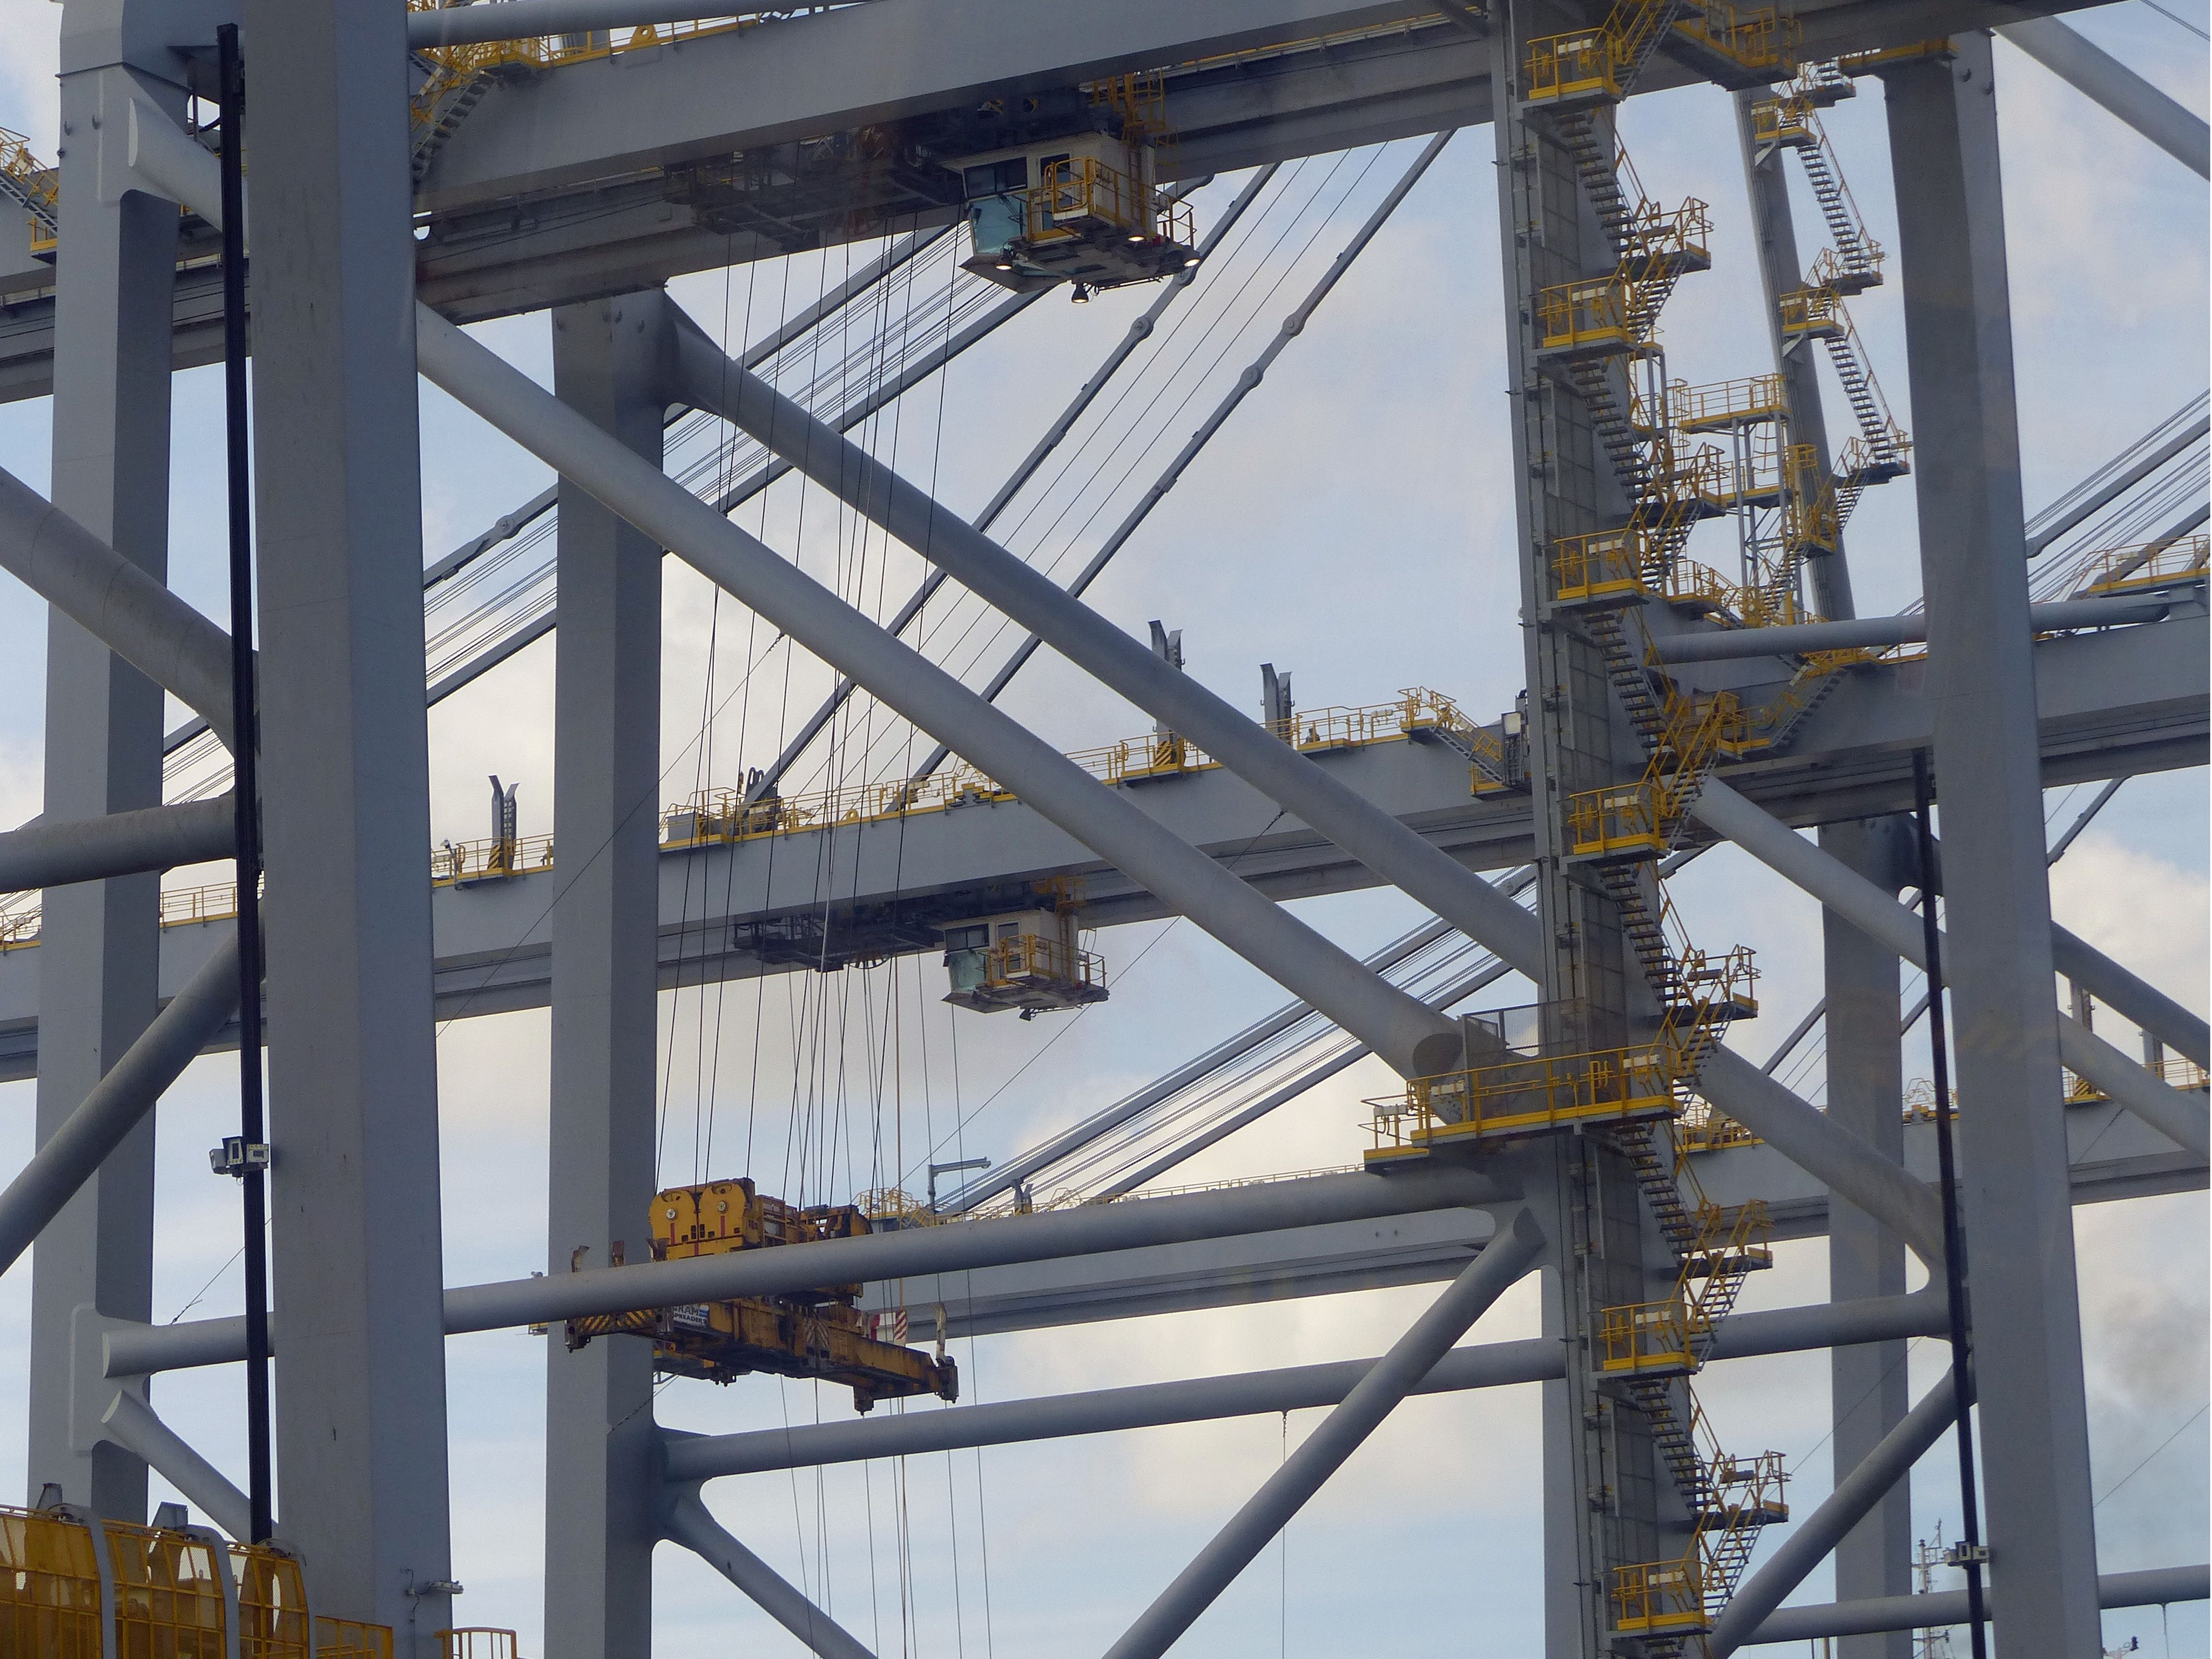 "<p>Containers are lifted off the ship two at a time&nbsp&#x3B;by quay cranes, 450-foot-high behemoths with booms long enough to reach across the width of the ship .</p><p><br></p><p>The cranes at London Gateway are the largest in the world&nbsp&#x3B;and were imported from China by the Zhen Hua, a special transport ship <a href=""http://onthethames.net/2016/07/01/huge-cranes-arrive-london-gateway/"">which carries assembled cranes in one gigantic&nbsp&#x3B;piece</a>. Each of the 2,000-ton cranes runs on rails supported by foundations driven 150 feet into the ground.&nbsp&#x3B;The operators sit in cabs high above.&nbsp&#x3B;</p><p><br></p><p>When unloading these ships, it's better to have good motor skills rather than brute strength.</p>"